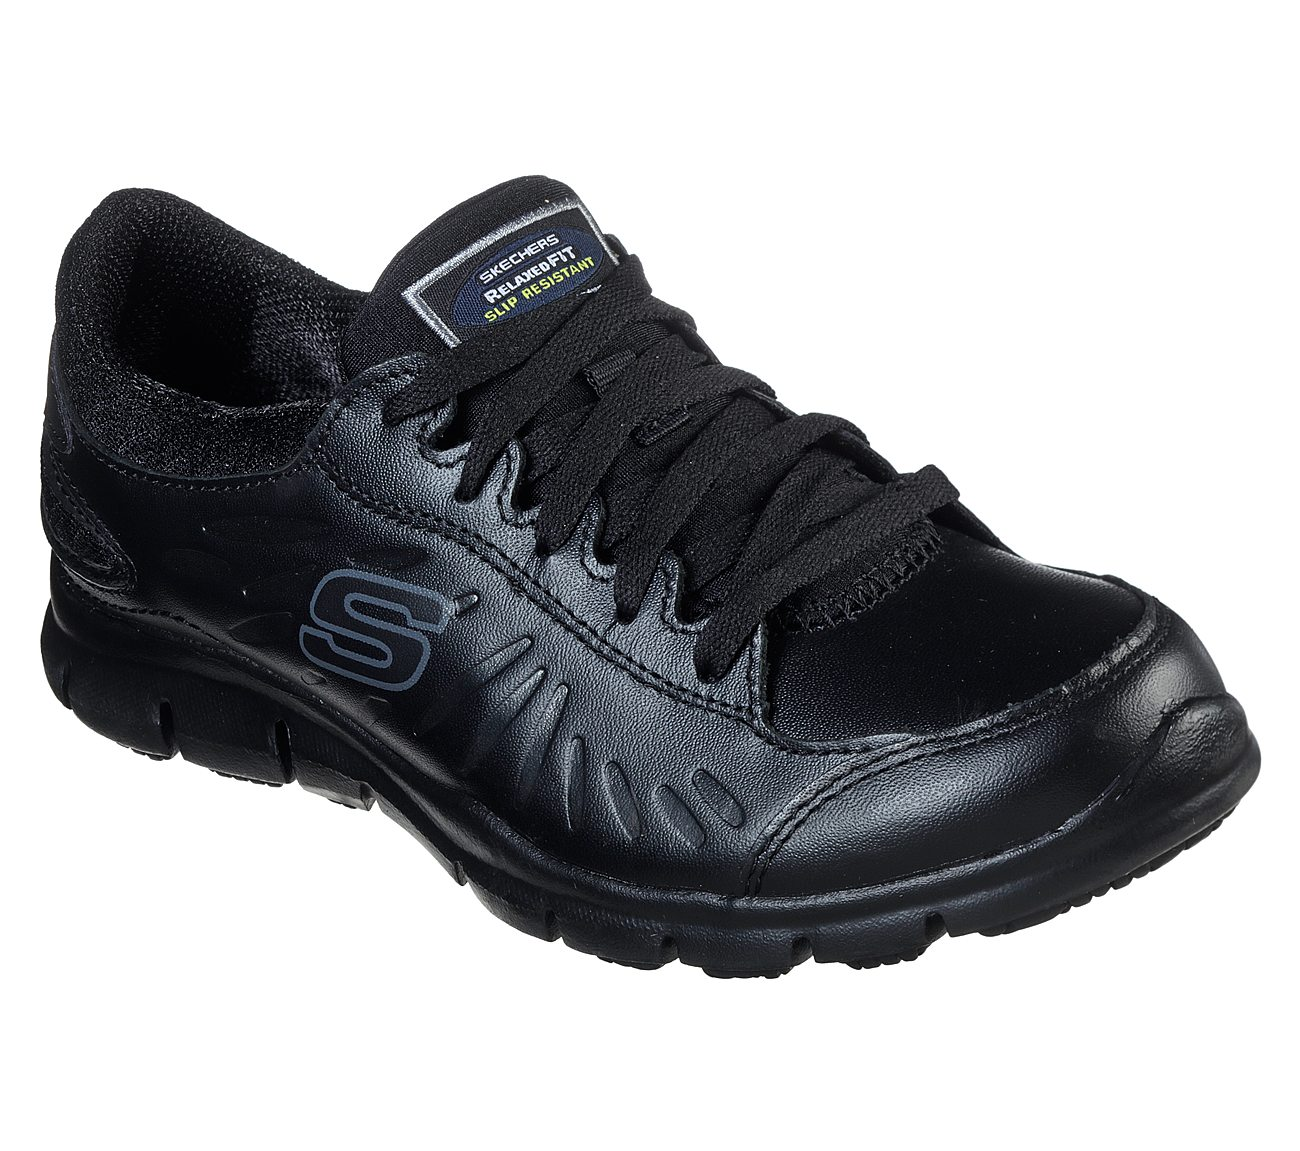 90e34fb3ba2 Buy SKECHERS Work  Relaxed Fit - Eldred SR Work Shoes only  75.00